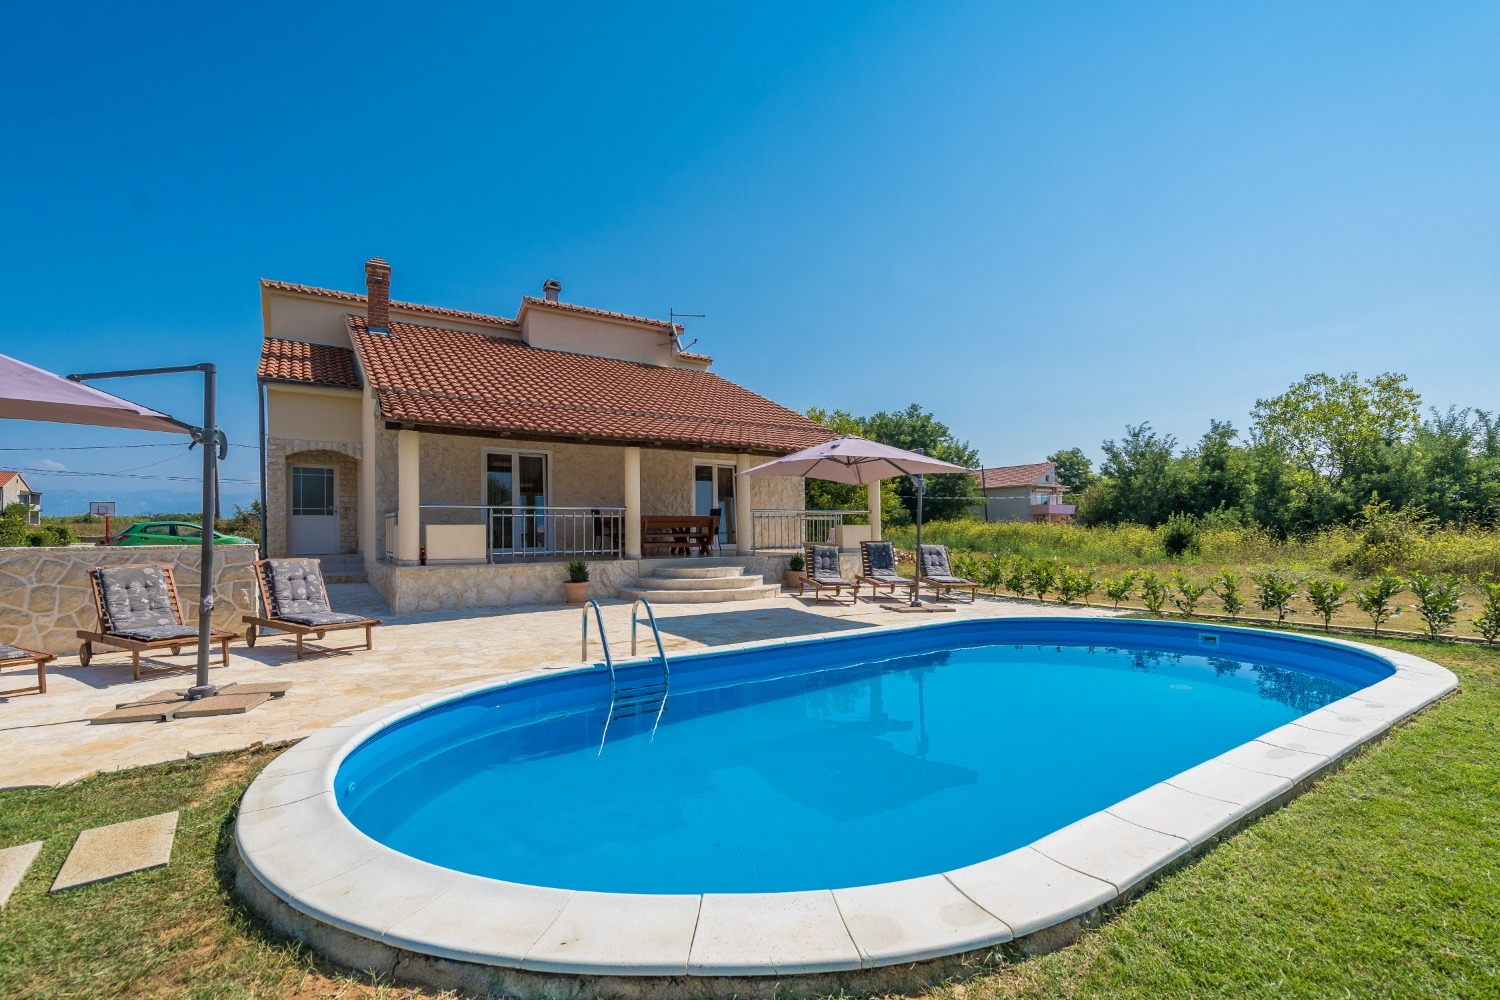 Holiday Homes, Privlaka, Nin and surroundings - Holiday houses, villas  Oasis Village Villa